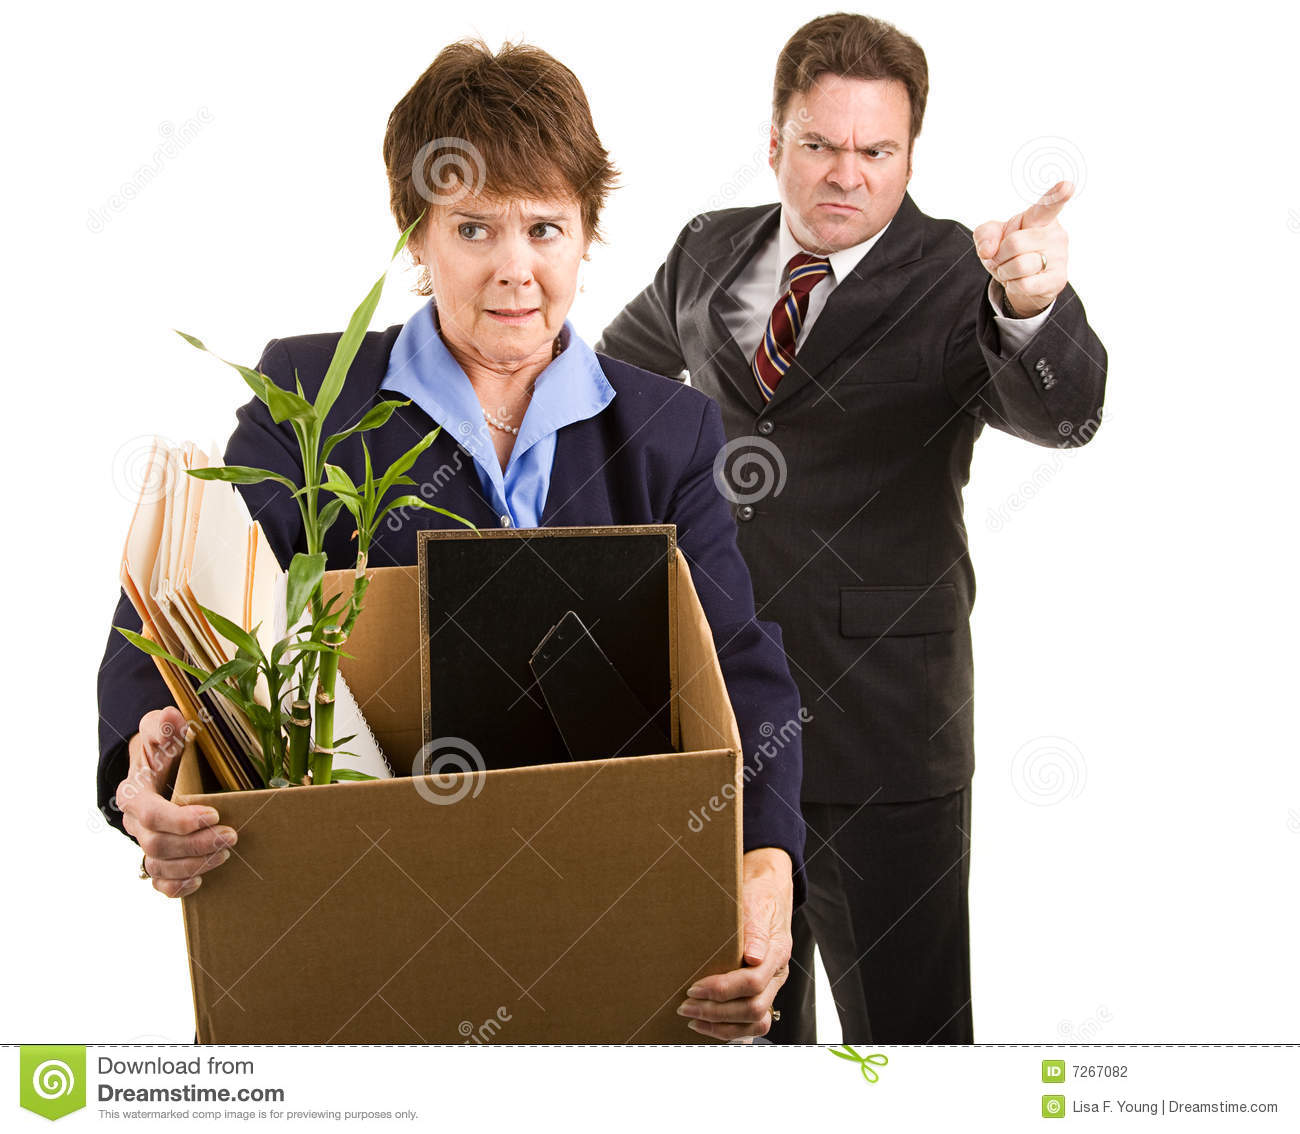 Fired From Job Stock Photography - Image: 7267082